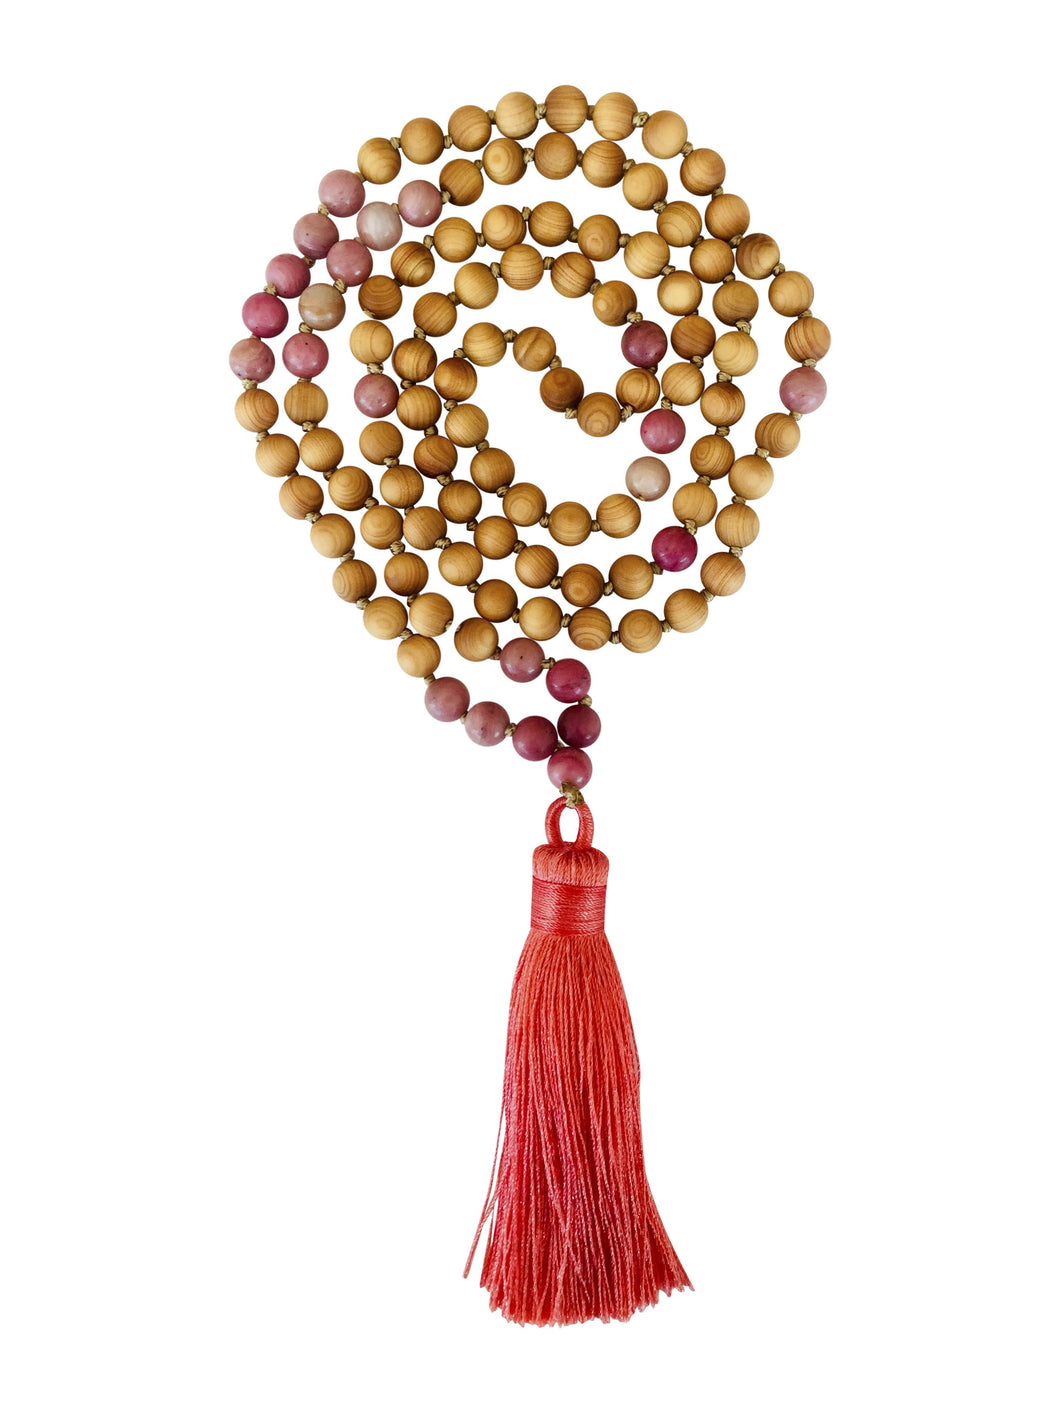 Rhondite and Sandalwood First Aid Mala Beads